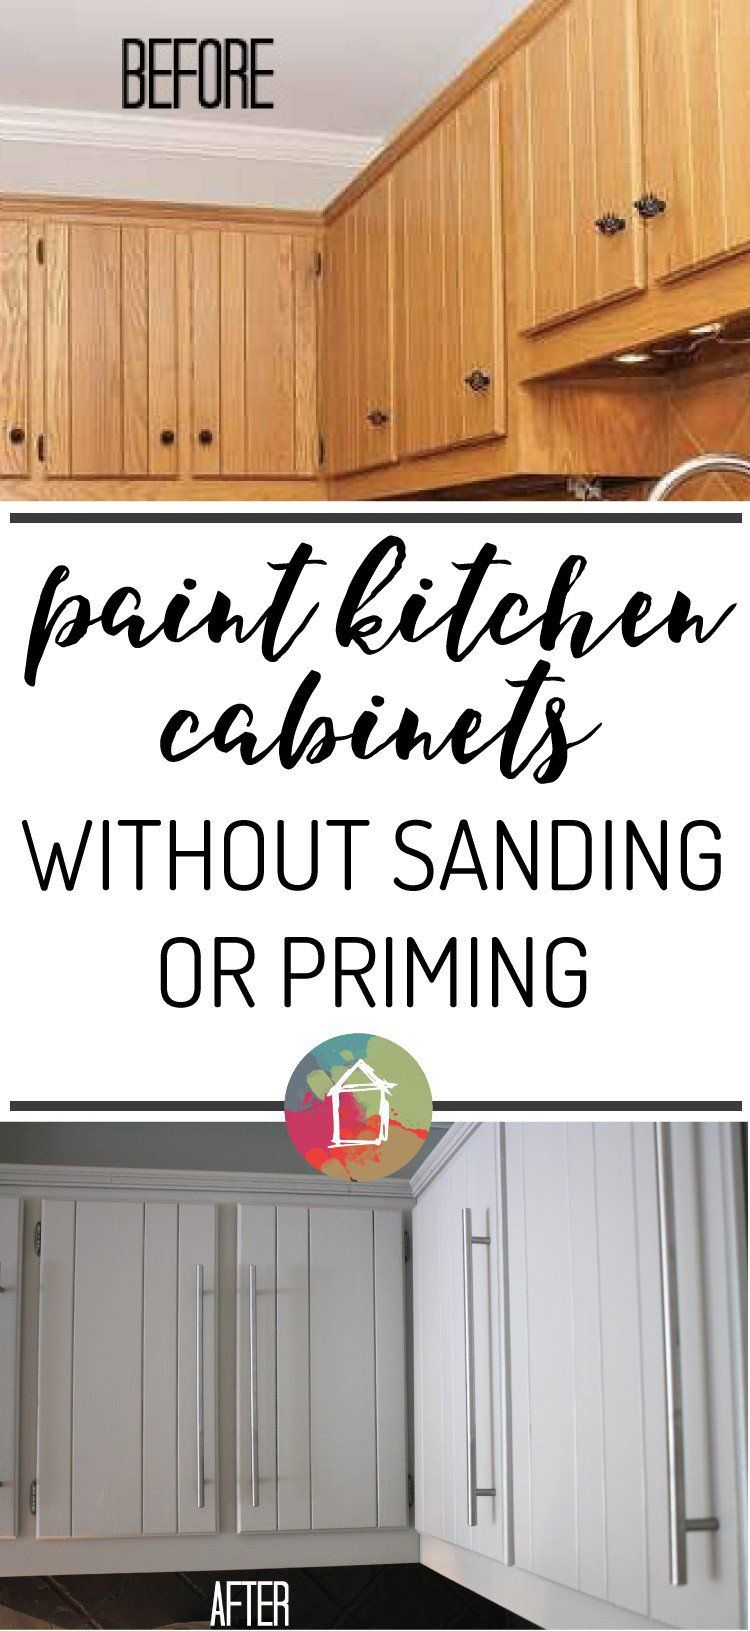 No Way You Can Paint Your Kitchen Cabinets Without Sanding Or Priming That Makes The Project Totally Doable I T Wait To Try It